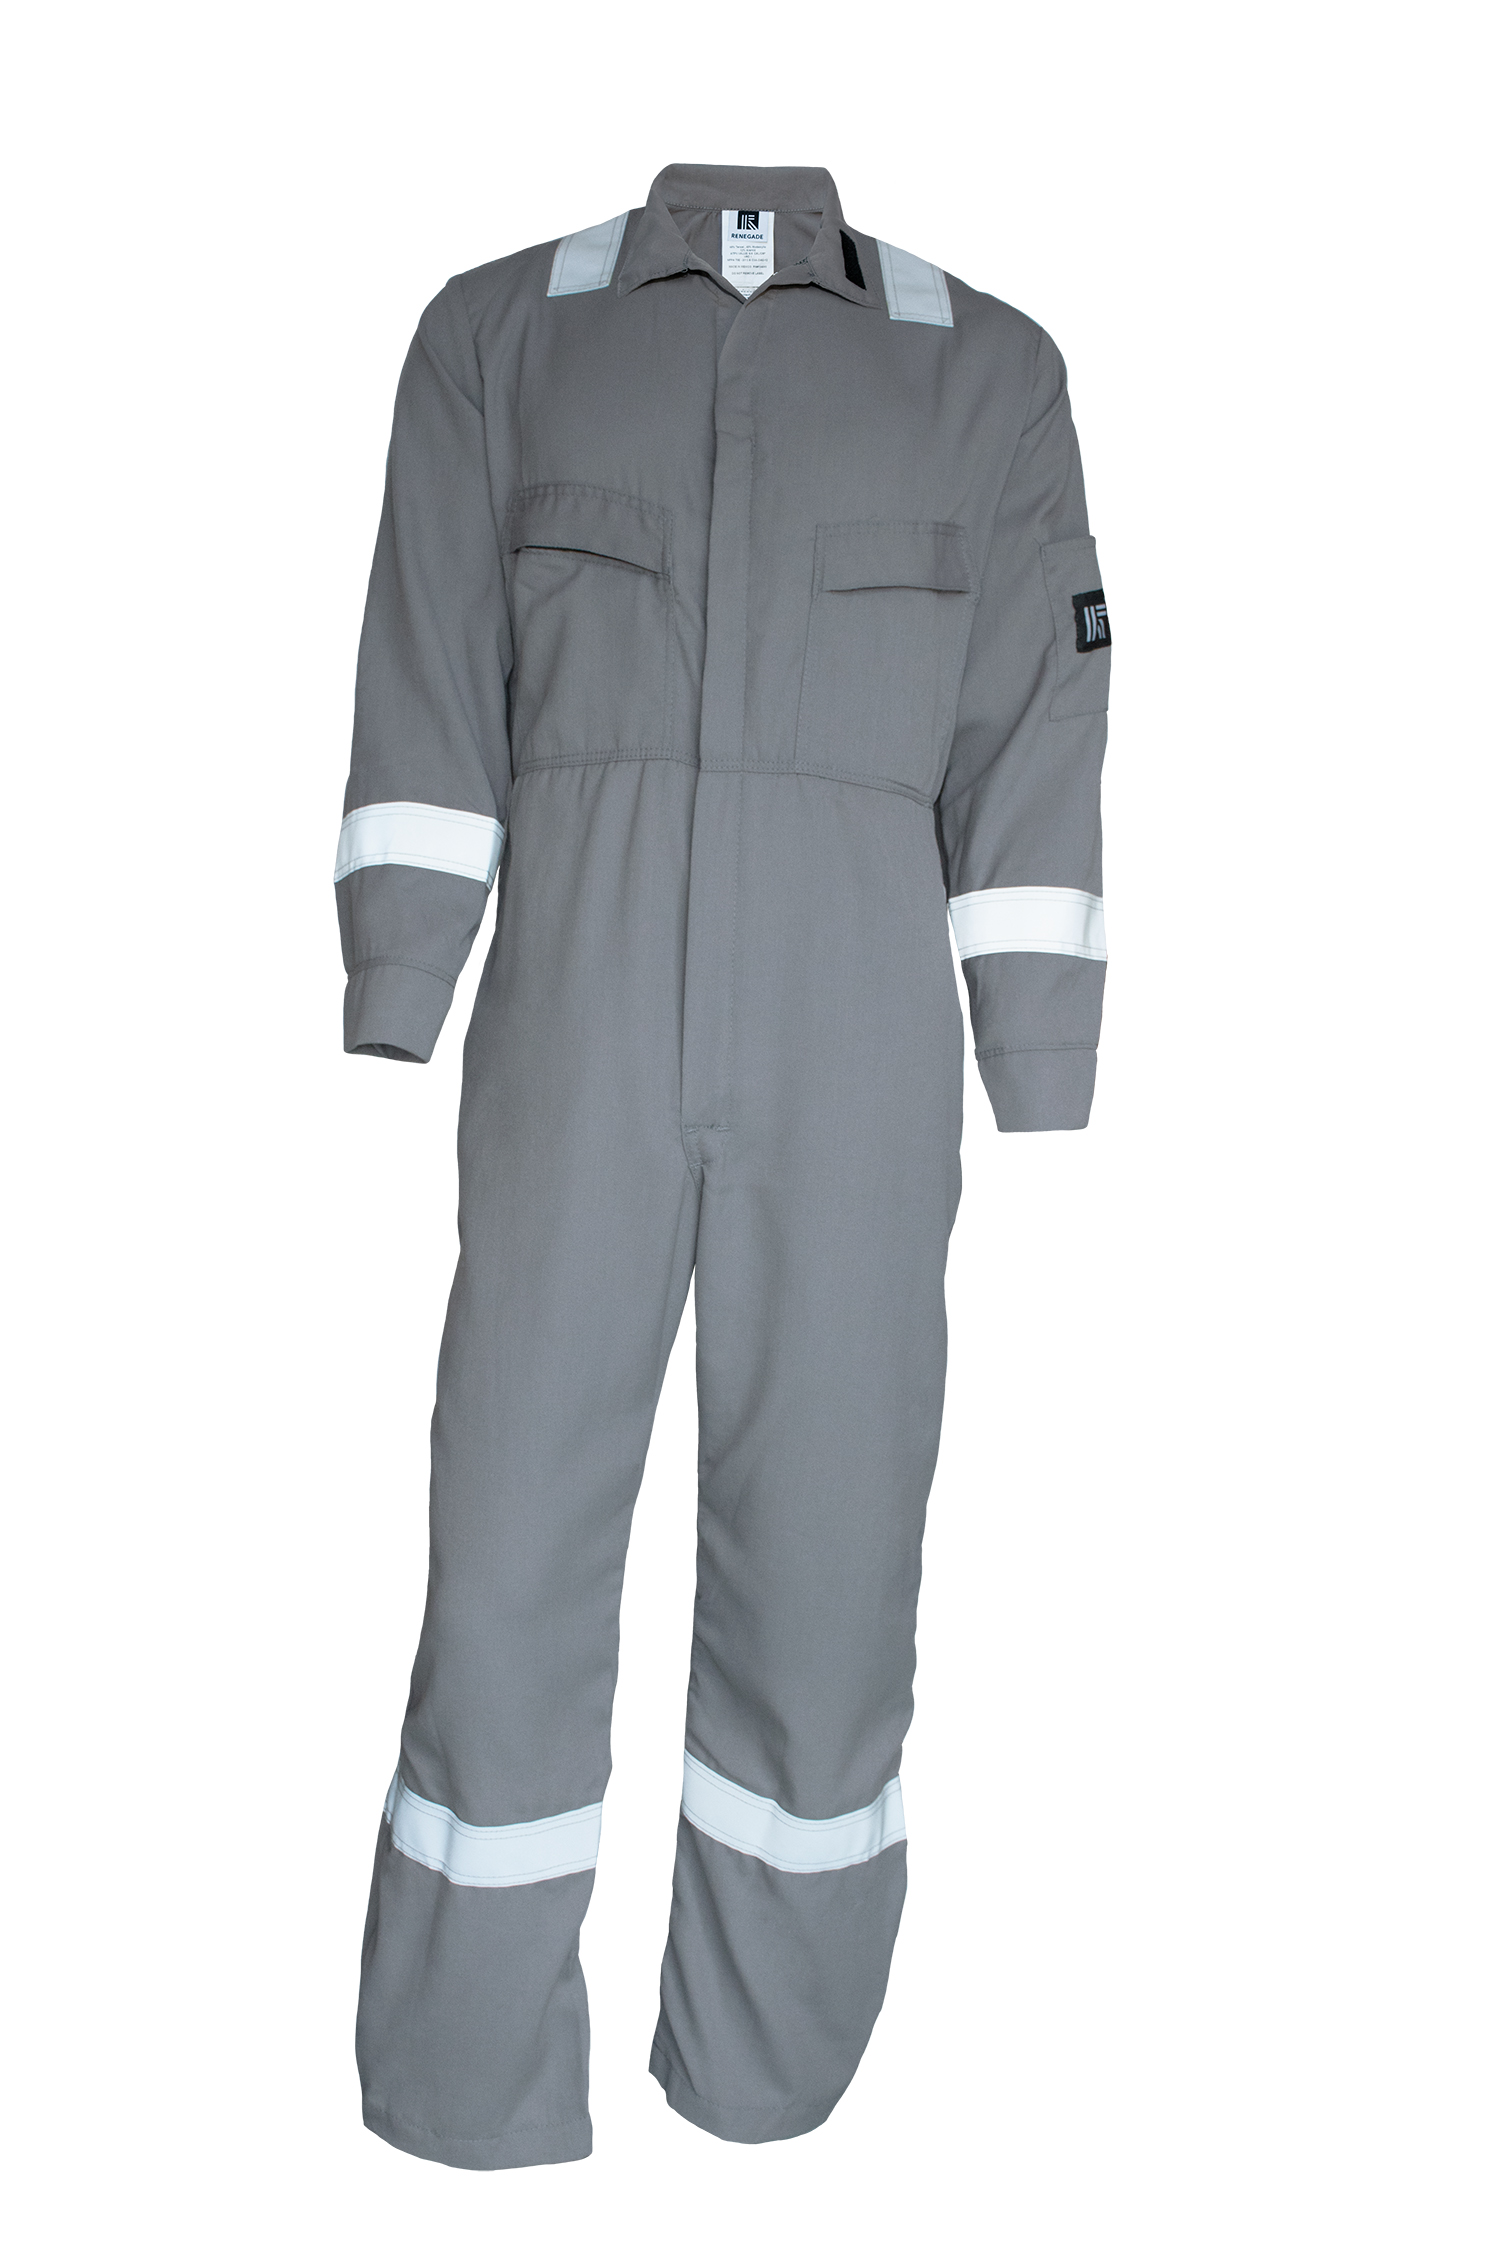 FR Cotton Oilfield Coverall with Logos-Renegade FR